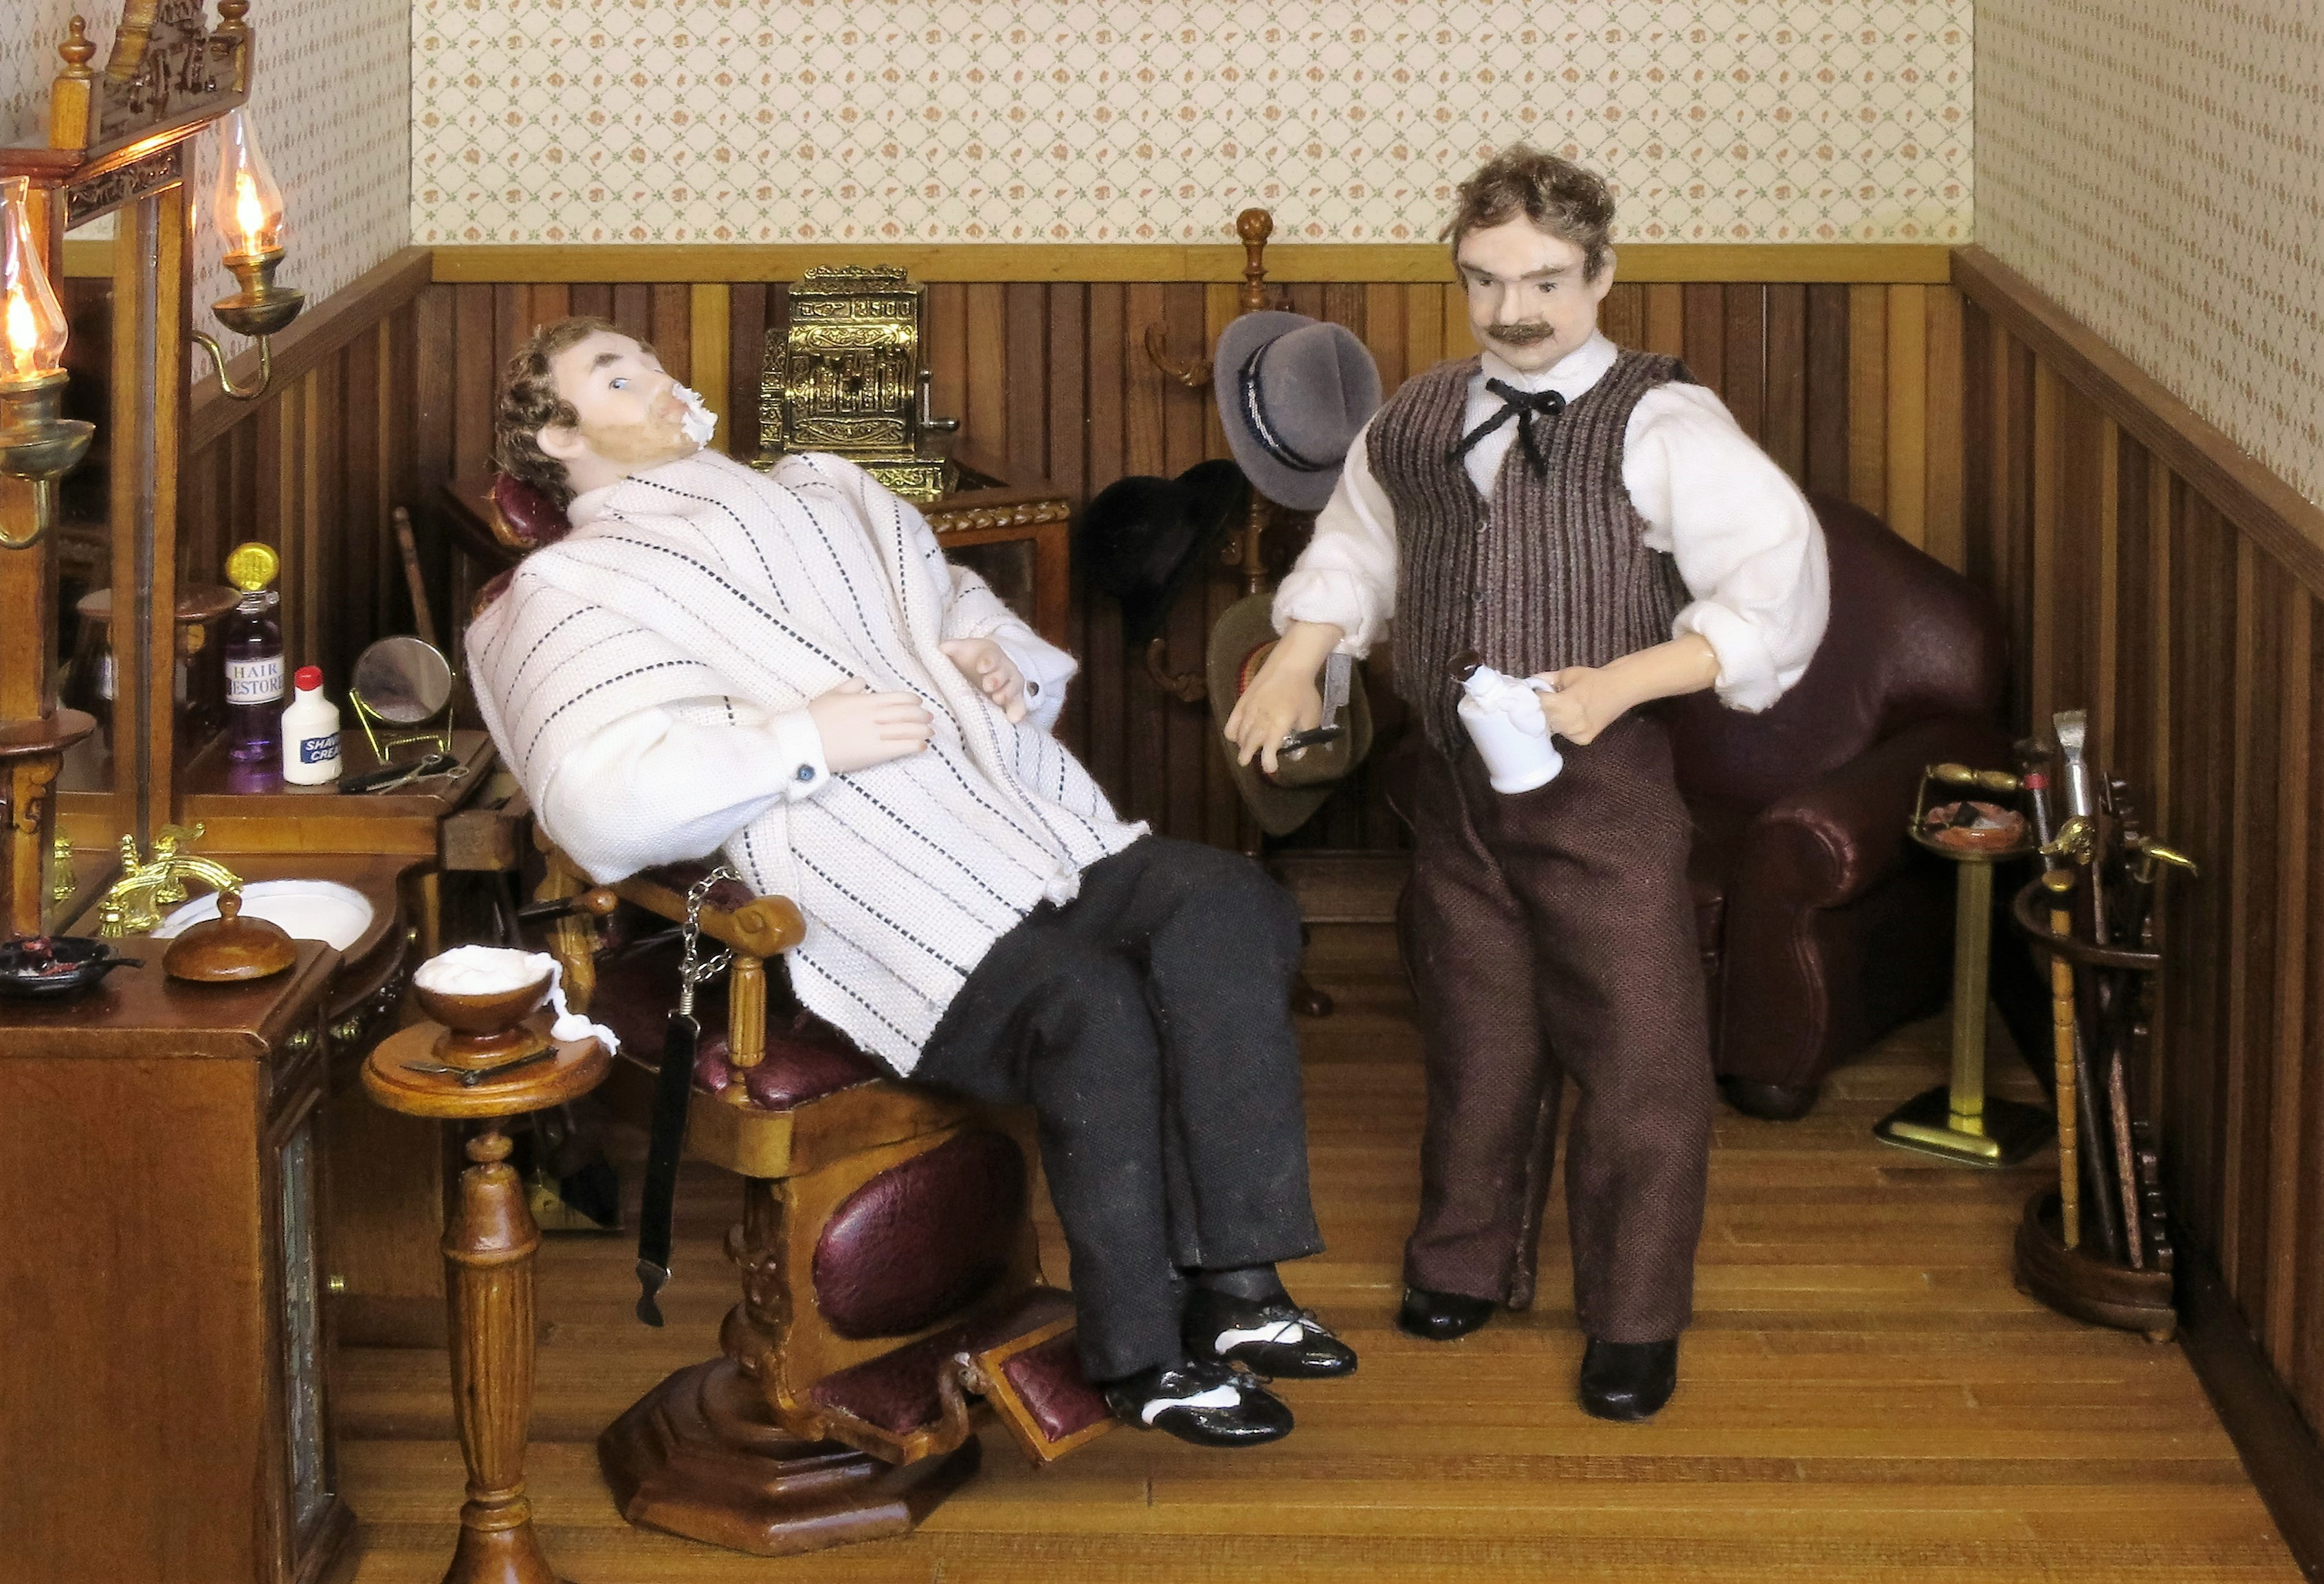 The Barber and Customer